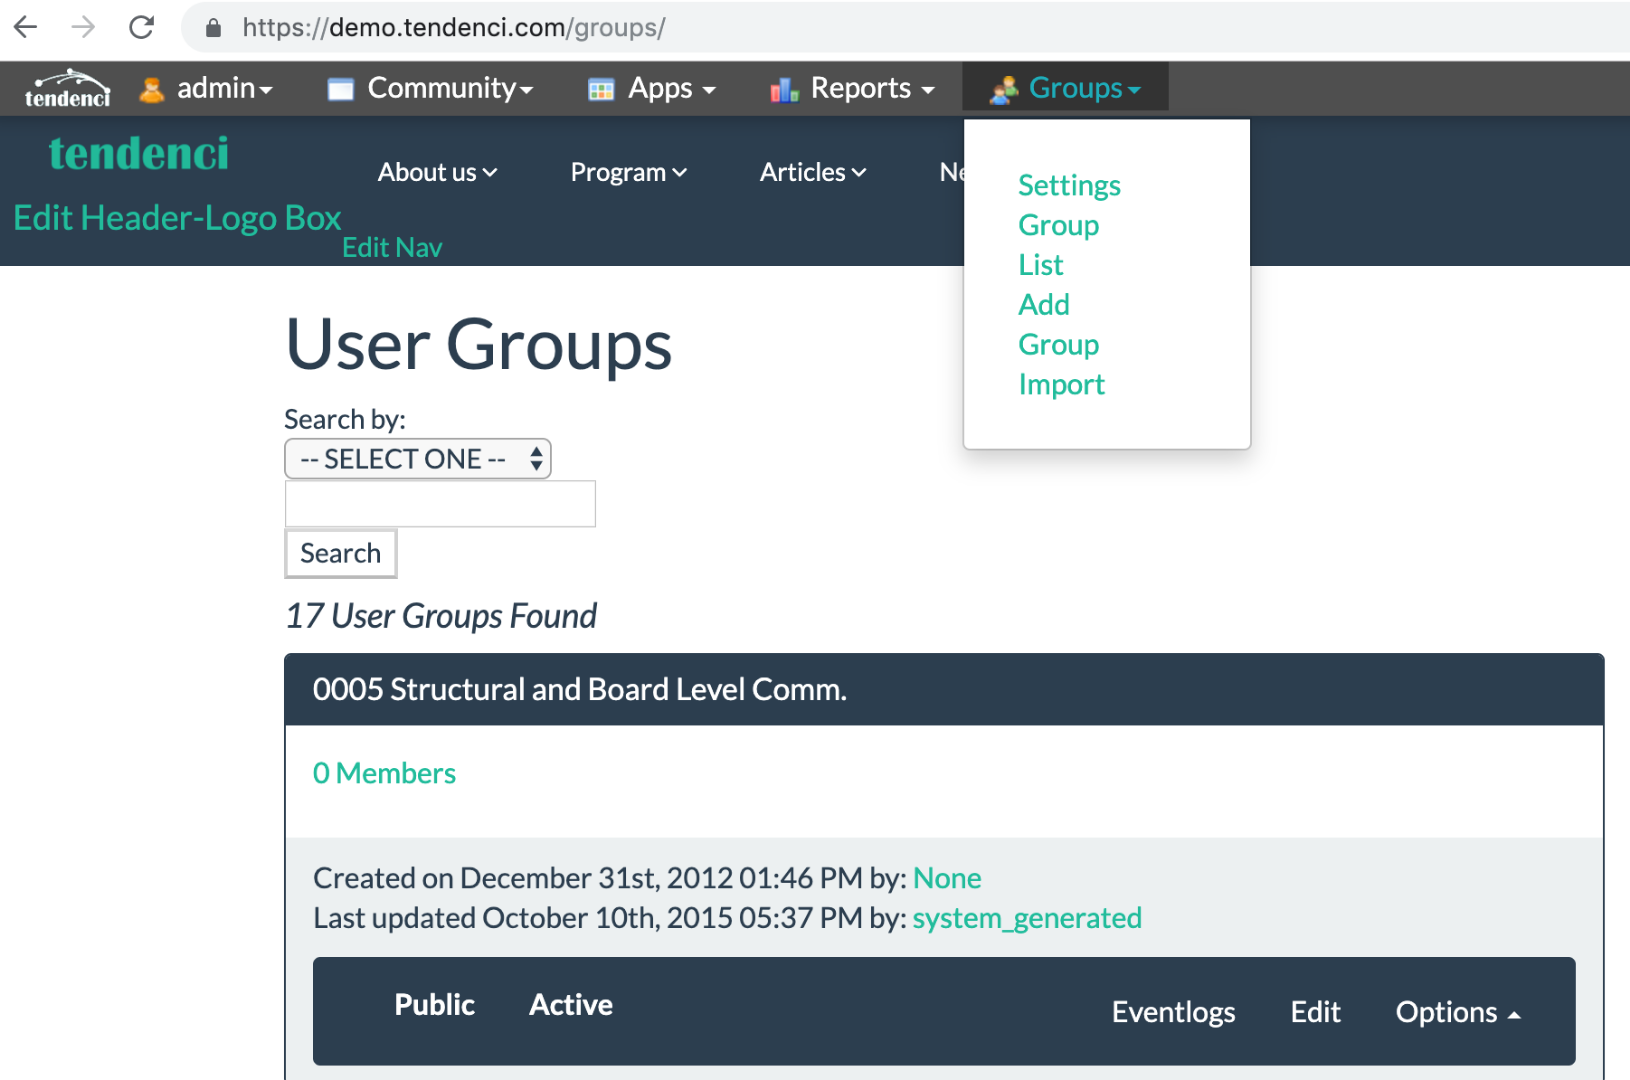 Add a New User Group in Tendenci